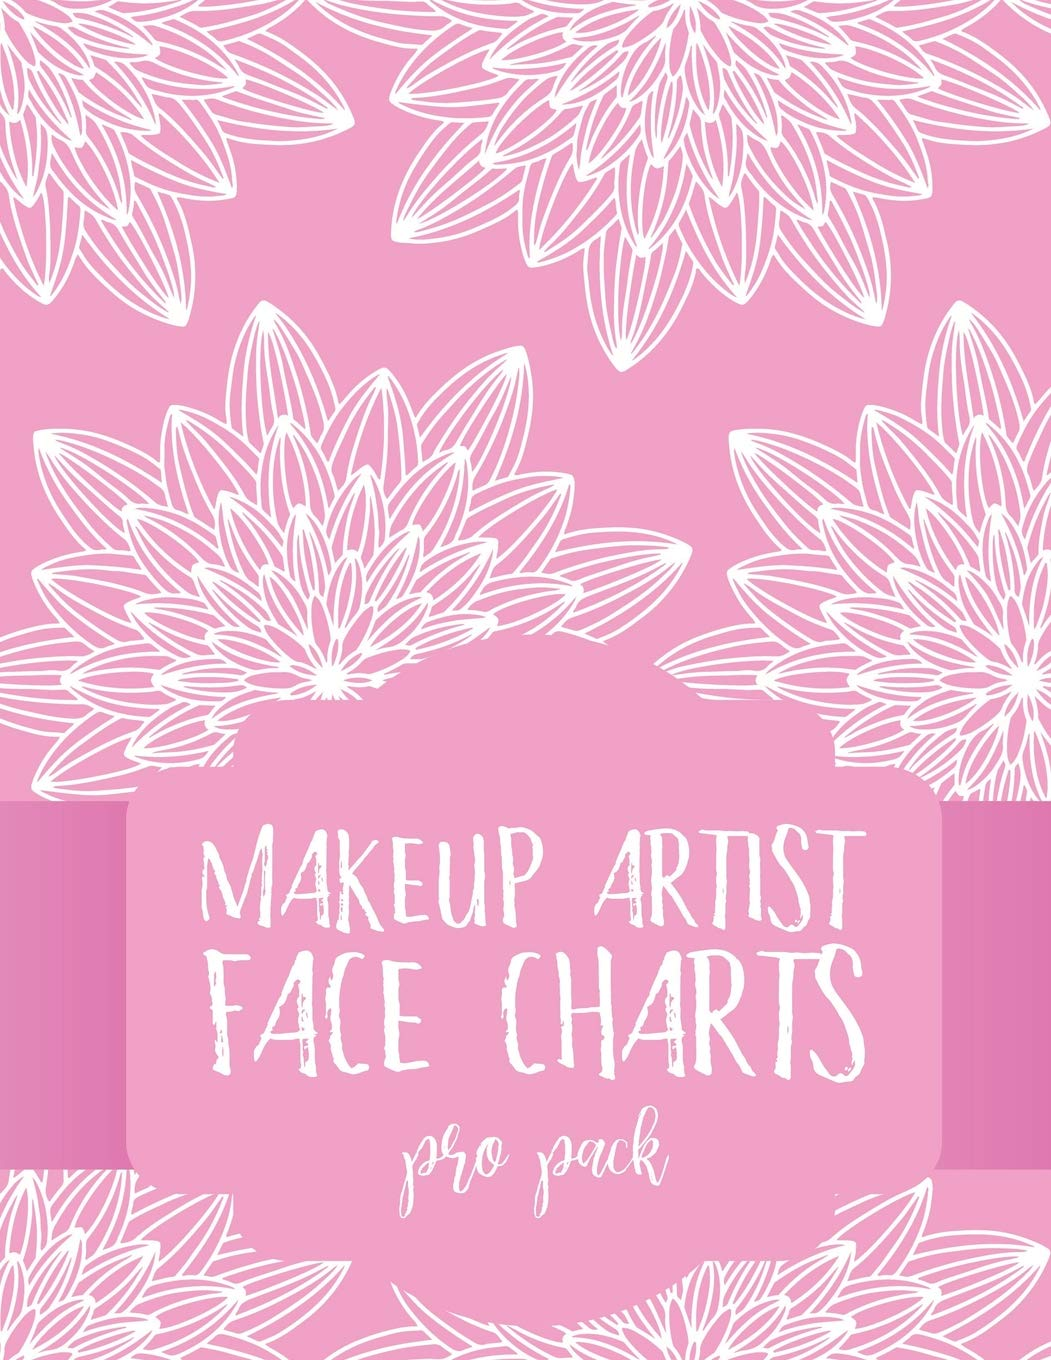 Makeup Artist Face Charts: Pro Pack Face Charts for Makeup Artists: Amazon.es: journals, iphosphenes, Page, Magdalena: Libros en idiomas extranjeros